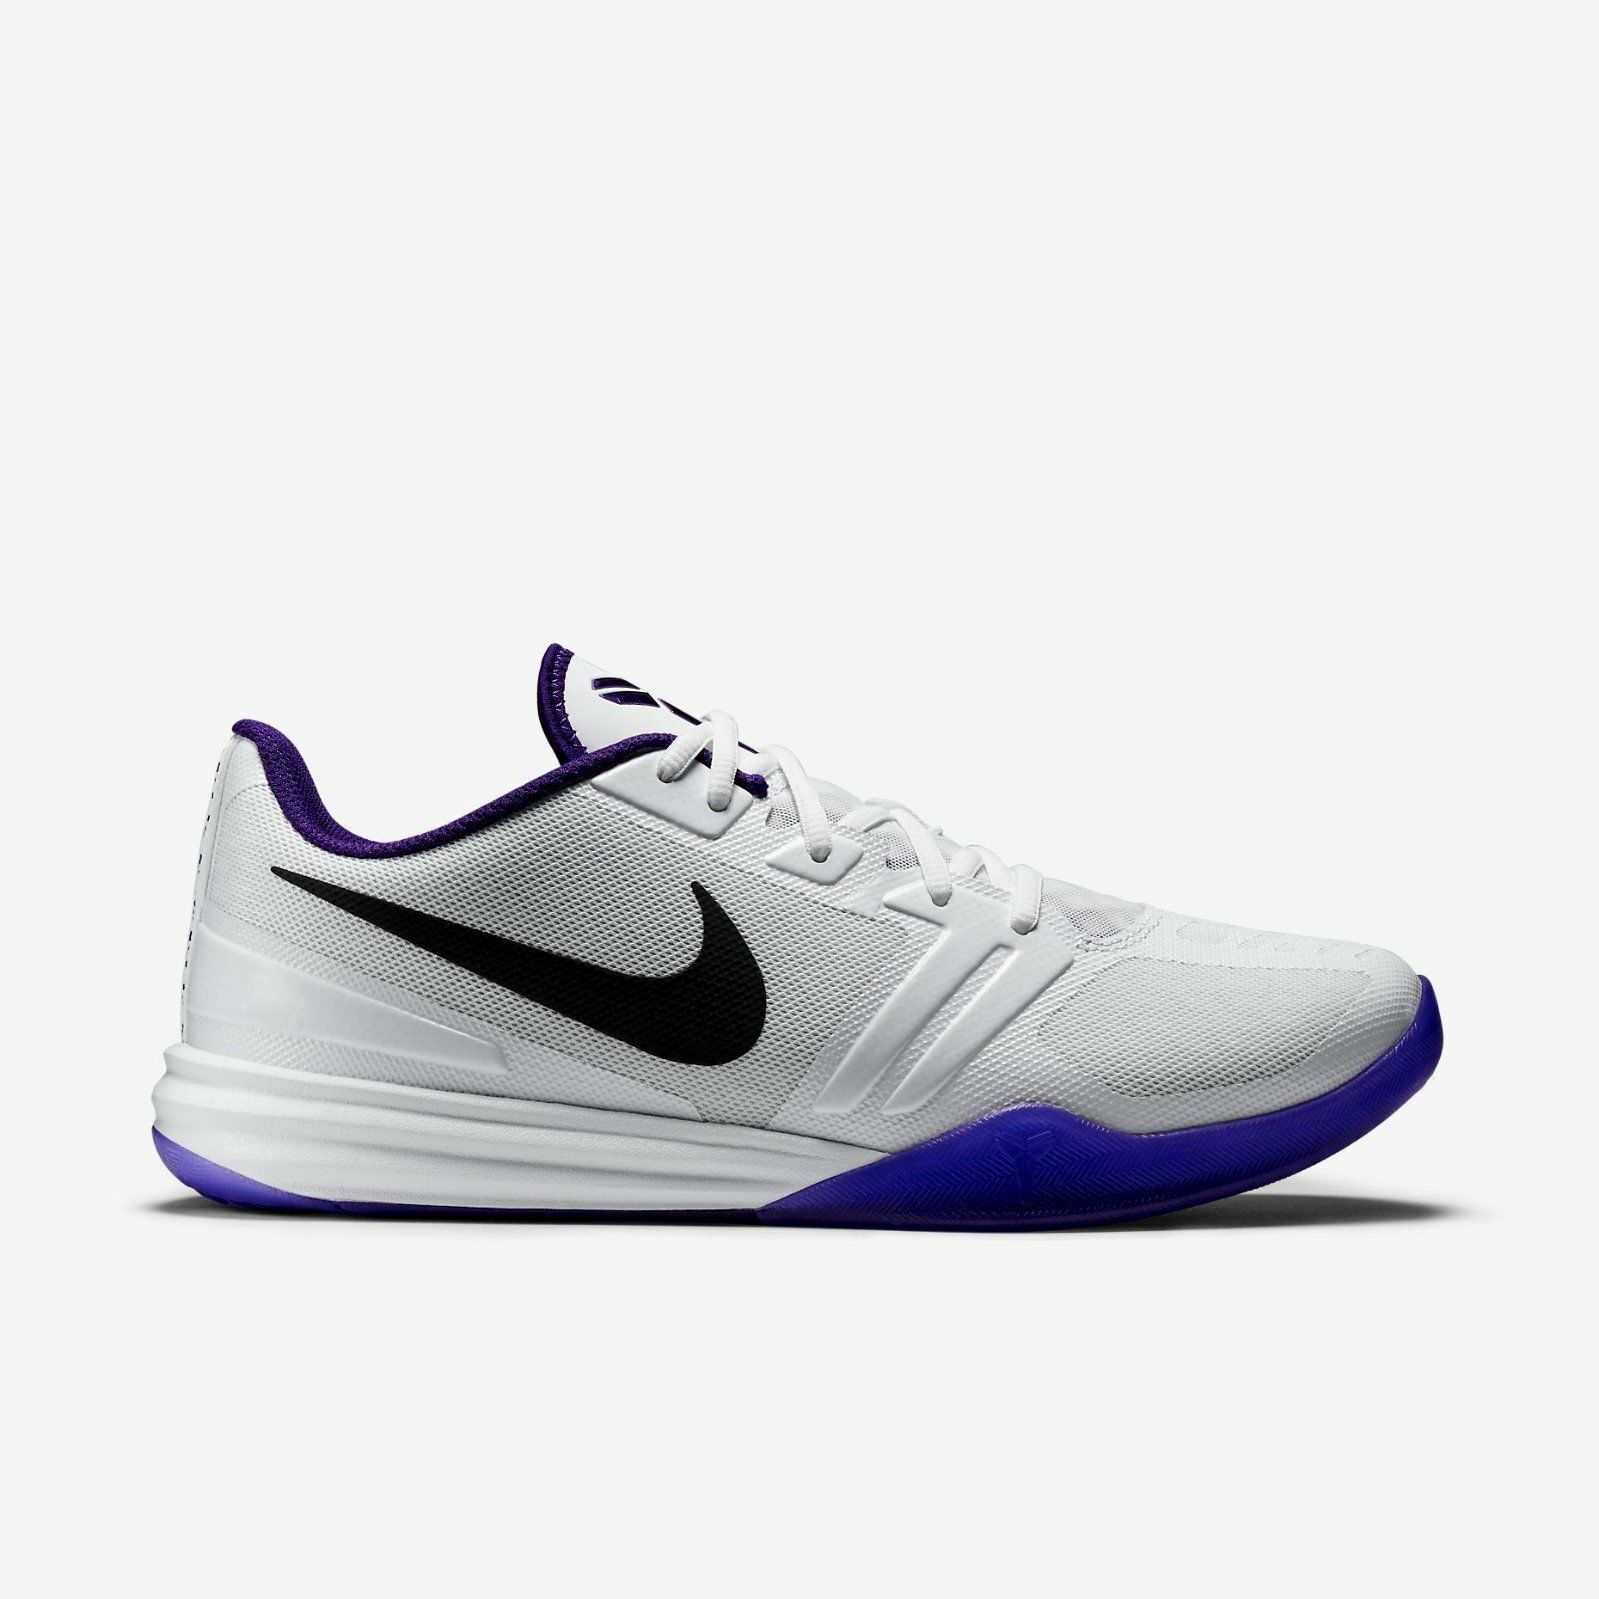 NIKE KB WHITE/PURPLE/BLK(704942-101)Lakers MENTALITY KOBE Sz 12 WHITE/PURPLE/BLK(704942-101)Lakers KB II 6 7 8 9 XI AD 5b5789